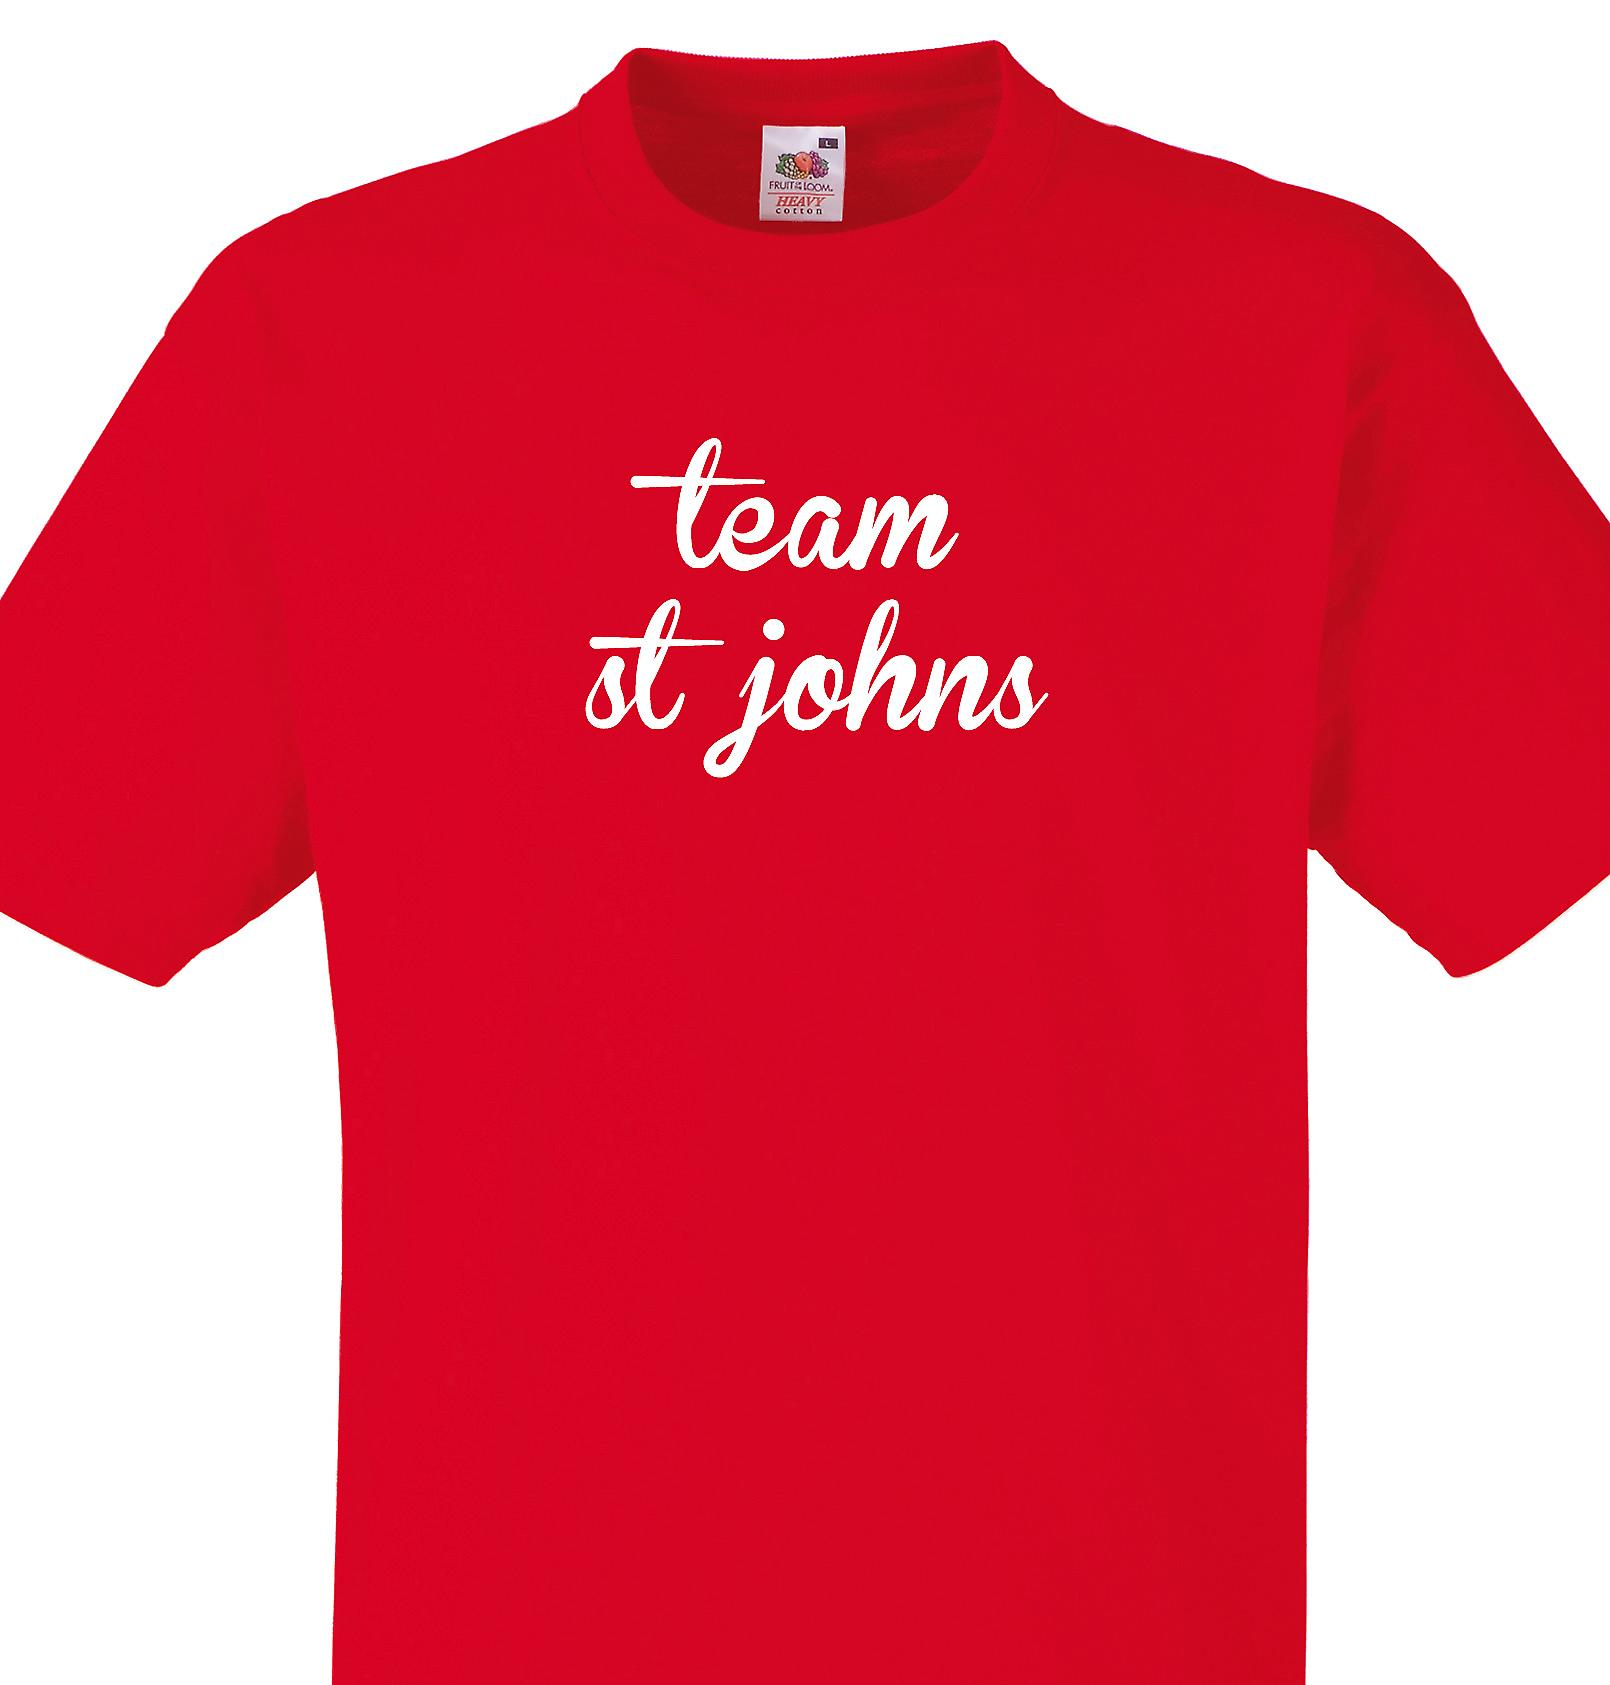 Team St johns Red T shirt